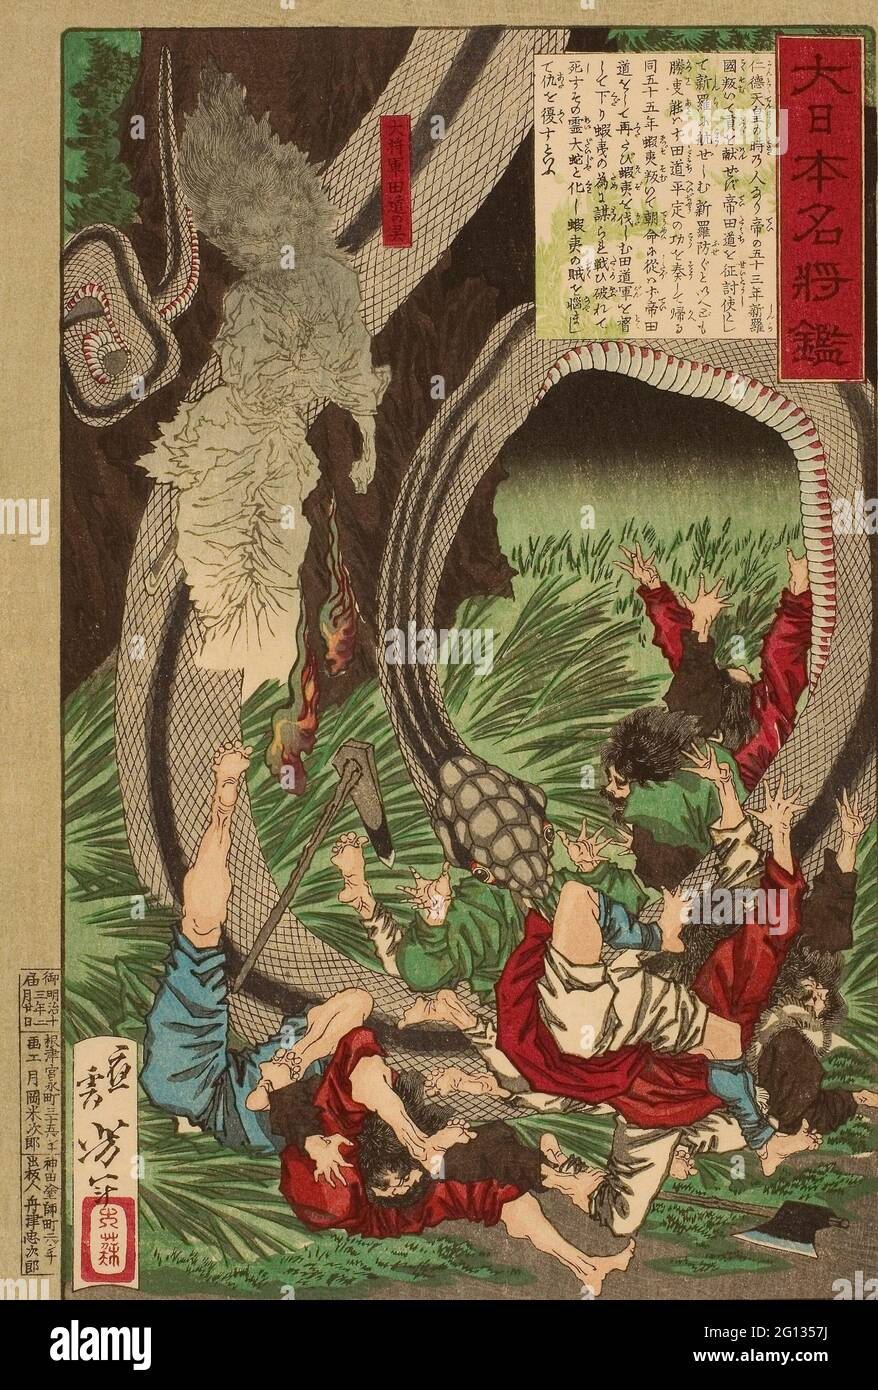 Author: Tsukioka Yoshitoshi. The Ghost of the Great General Tamichi (Daishogun Tamichi no rei), from the series - - A Mirror of Famous Japanese Stock Photo